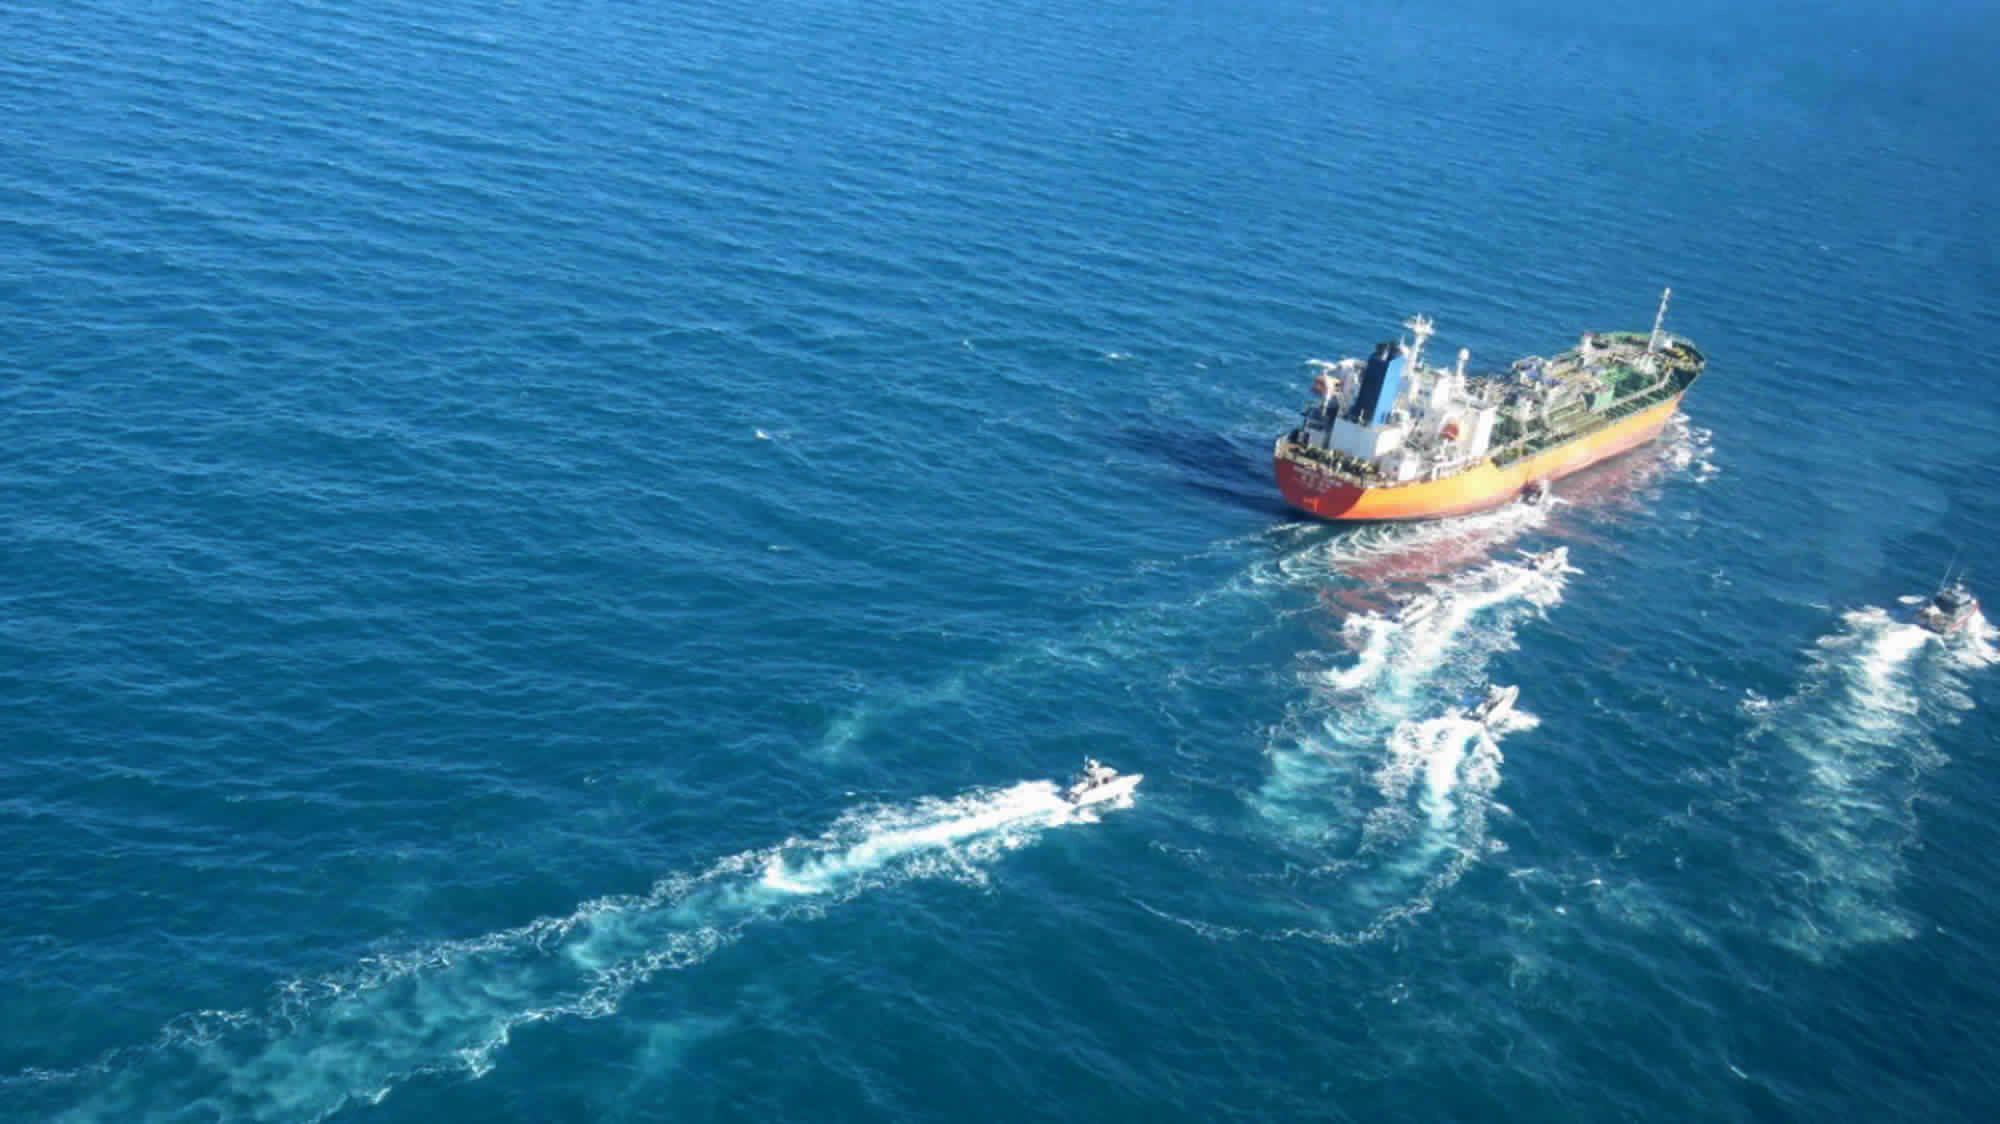 South Korean tanker was boarded by armed Iran Guard forces